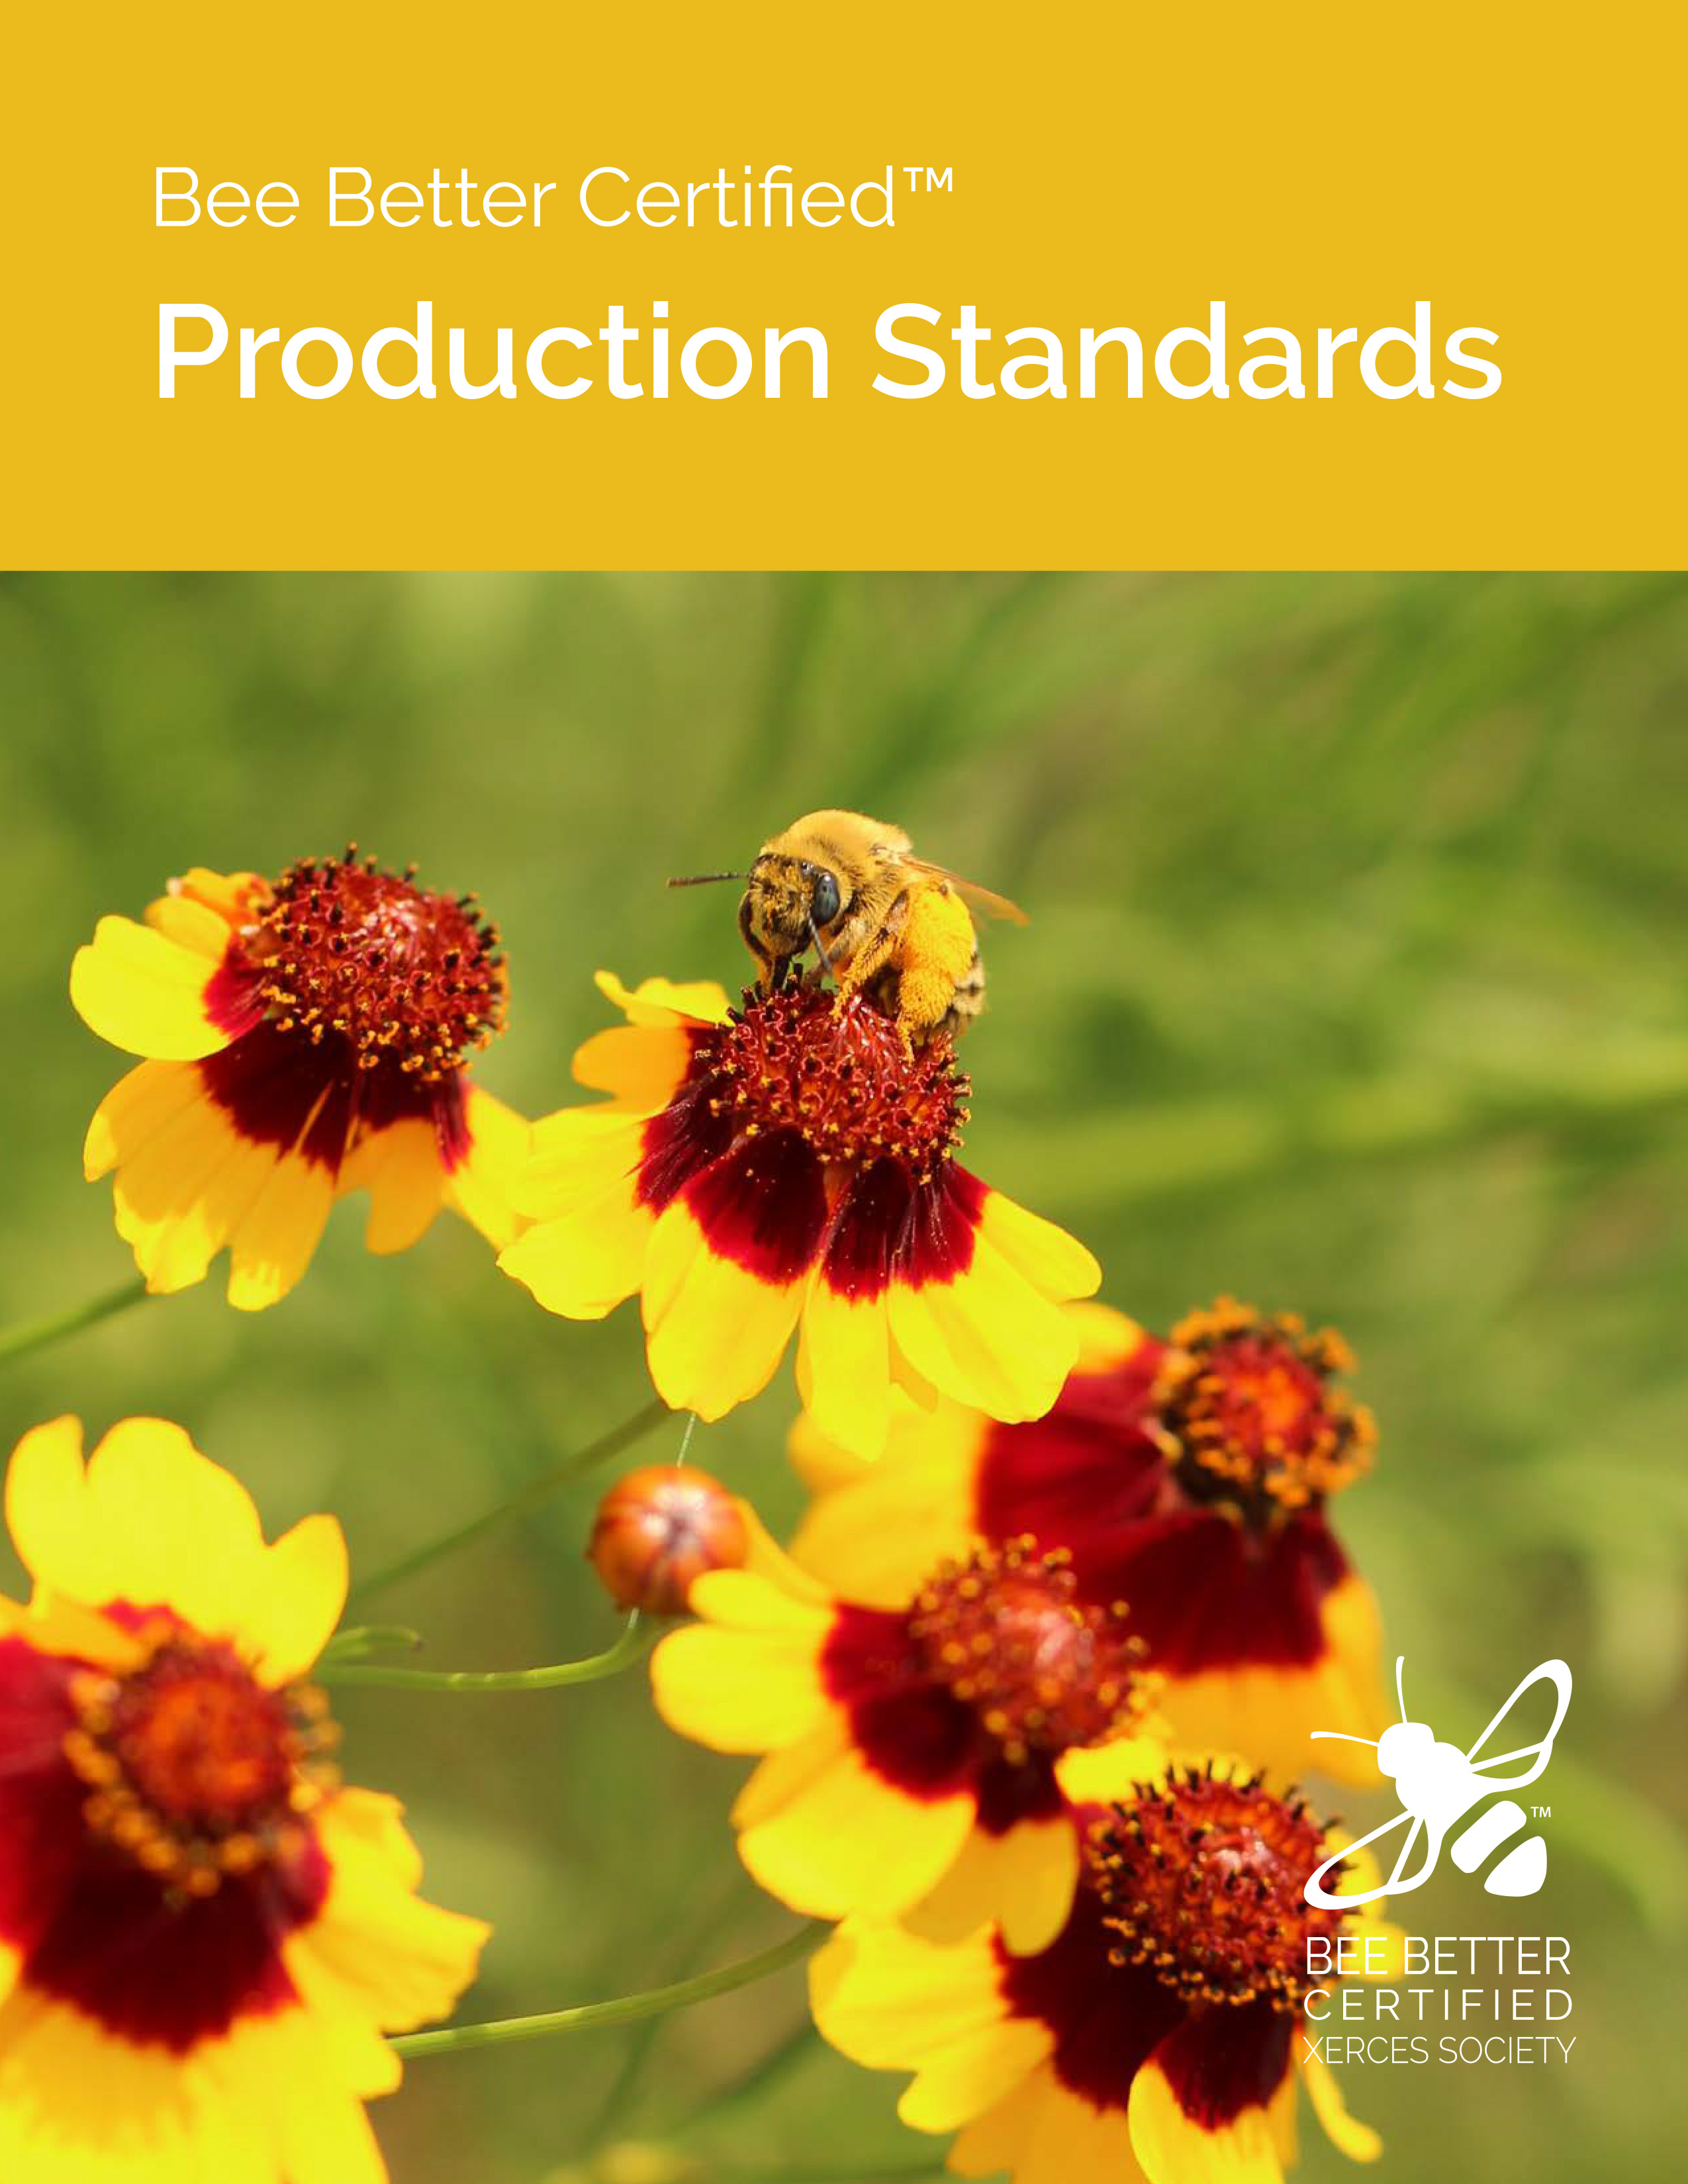 The Bee Better Certified Production Standards' cover image, with a bright photo of yellow and red blossoms visited by a bumble bee, is shown.